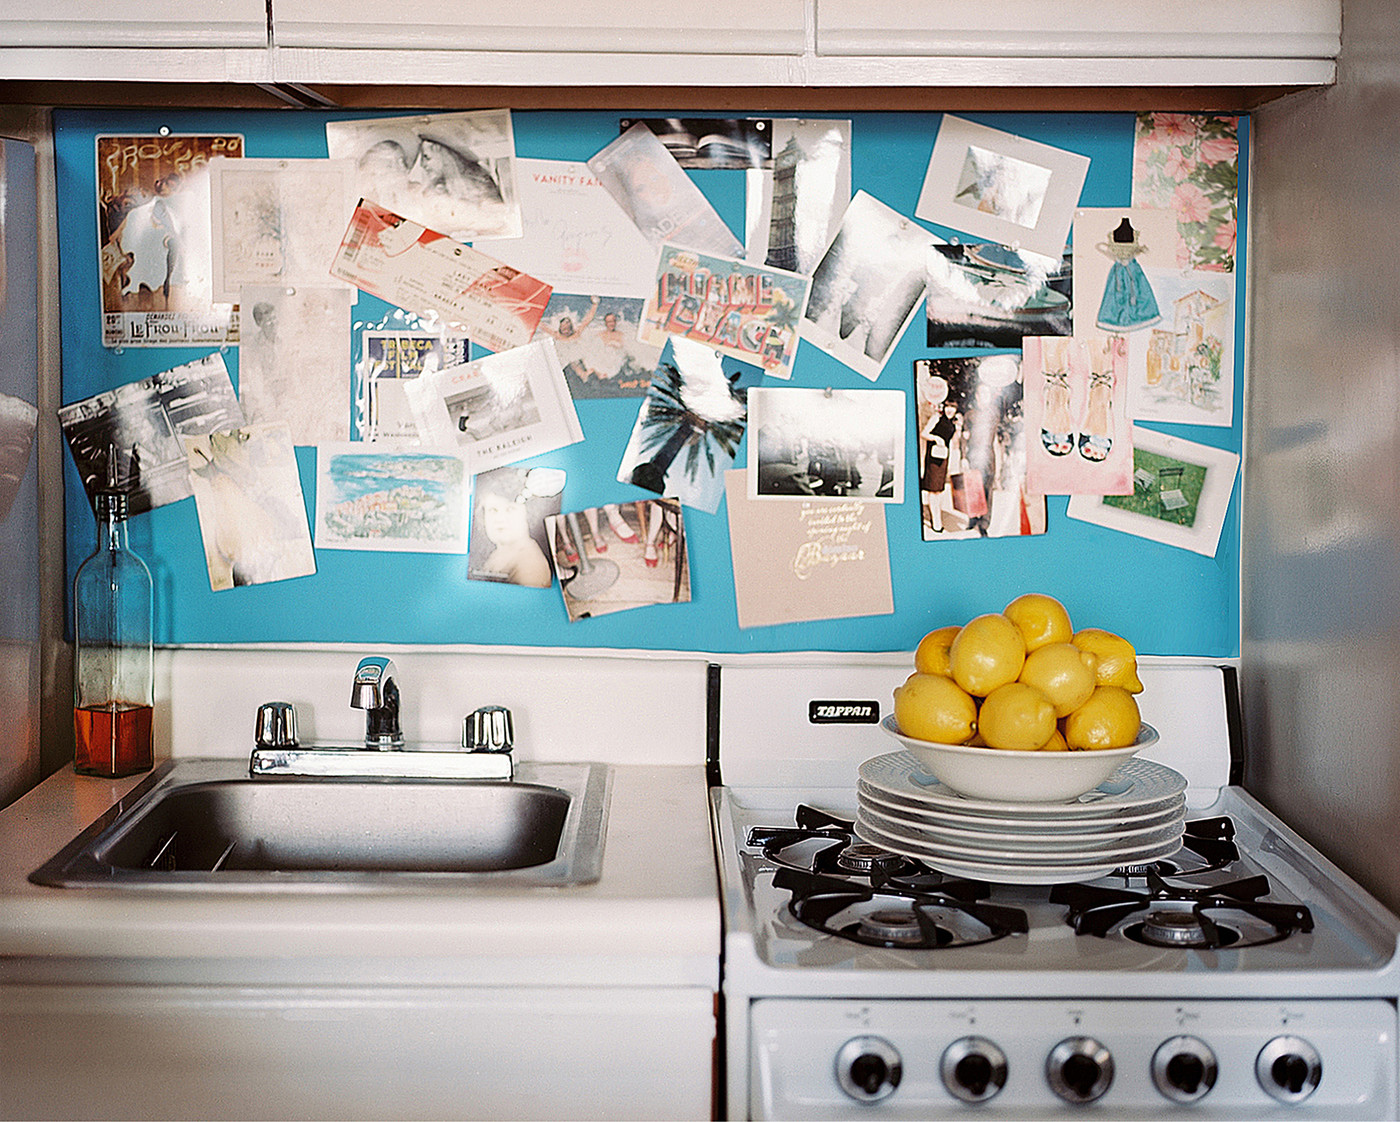 Kitchen Remodeling Design Ideas Inspiration: Stovetop Decor Ideas You May Not Have Thought Of (Yet